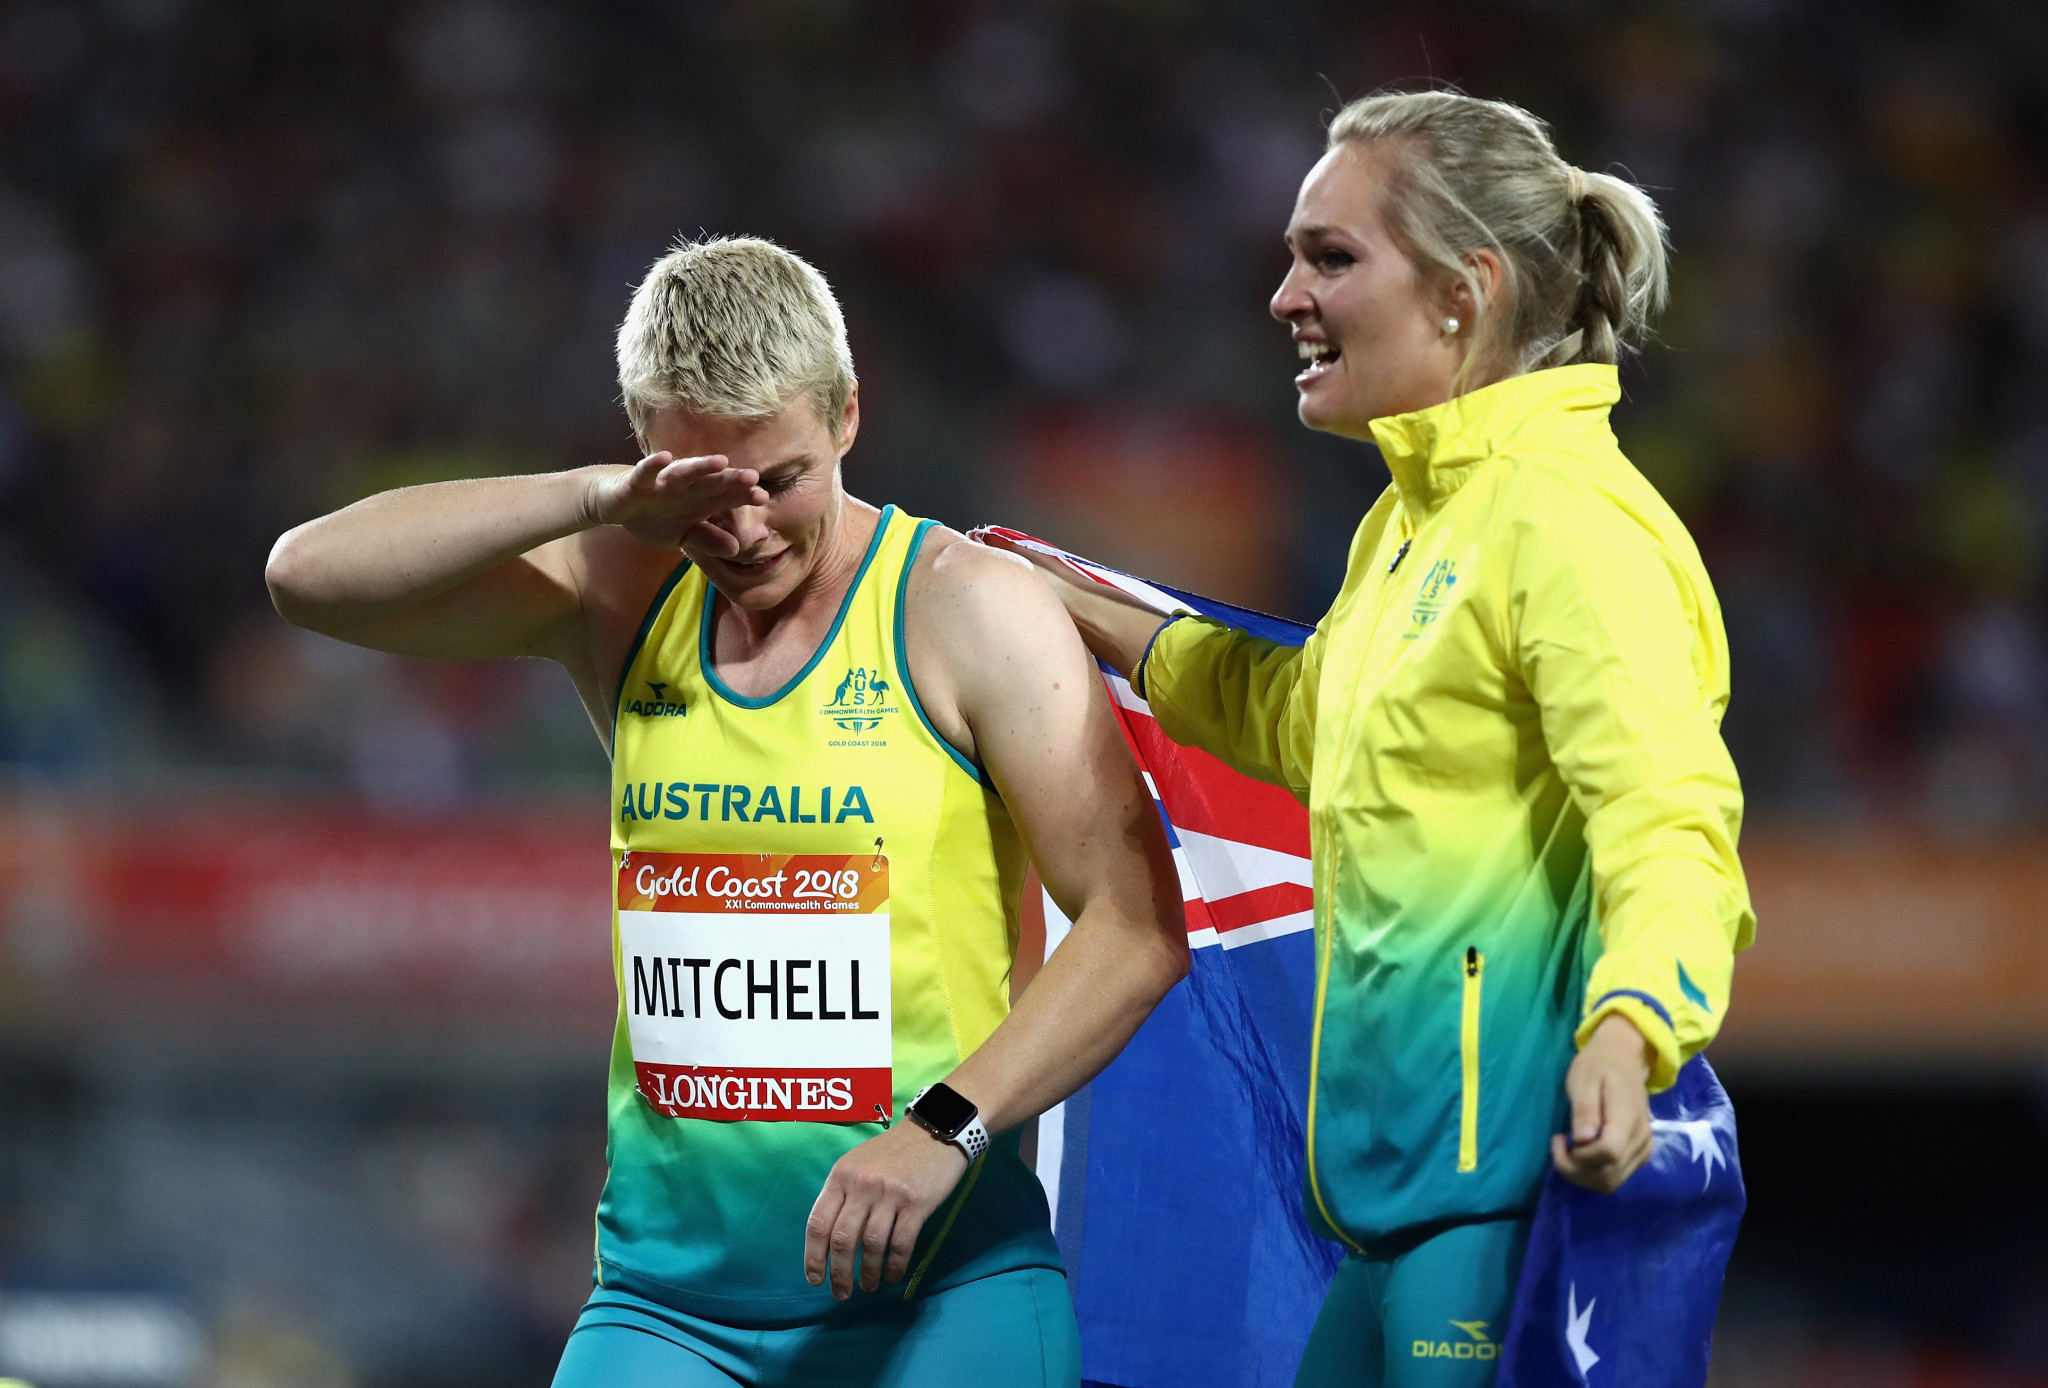 Kathryn Mitchell of Australia is congratulated as she wins gold by silver medallist Kelsey-Lee Roberts of Australia in the Women's Javelin final during athletics on day seven of the Gold Coast 2018 Commonwealth Games ©Getty Images